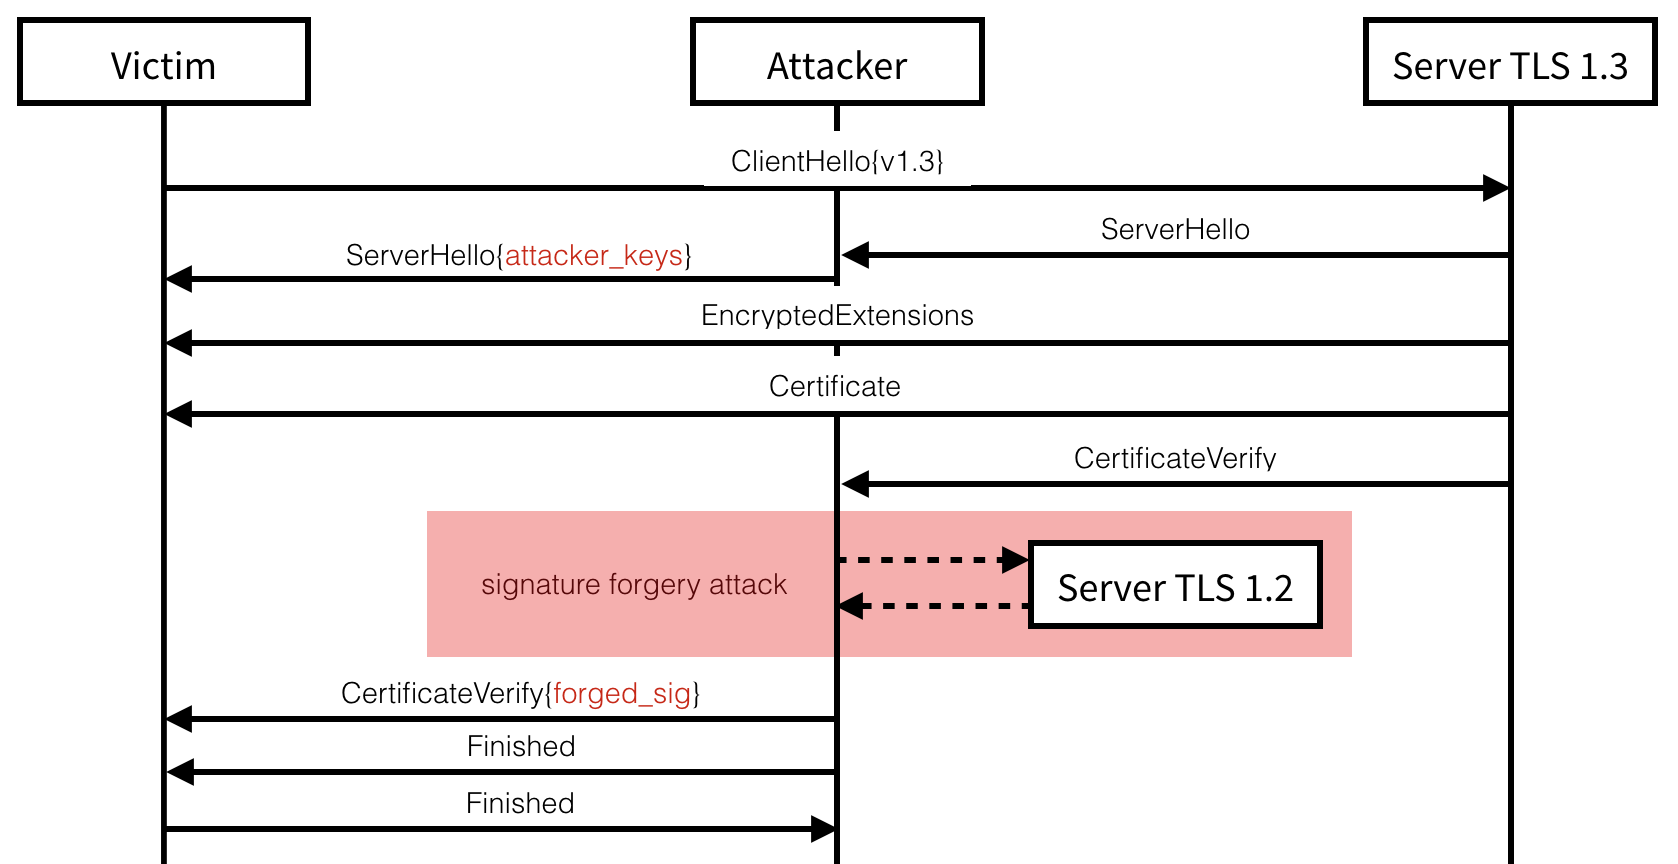 Downgrade Attack on TLS 1.3 and Vulnerabilities in Major TLS Libraries